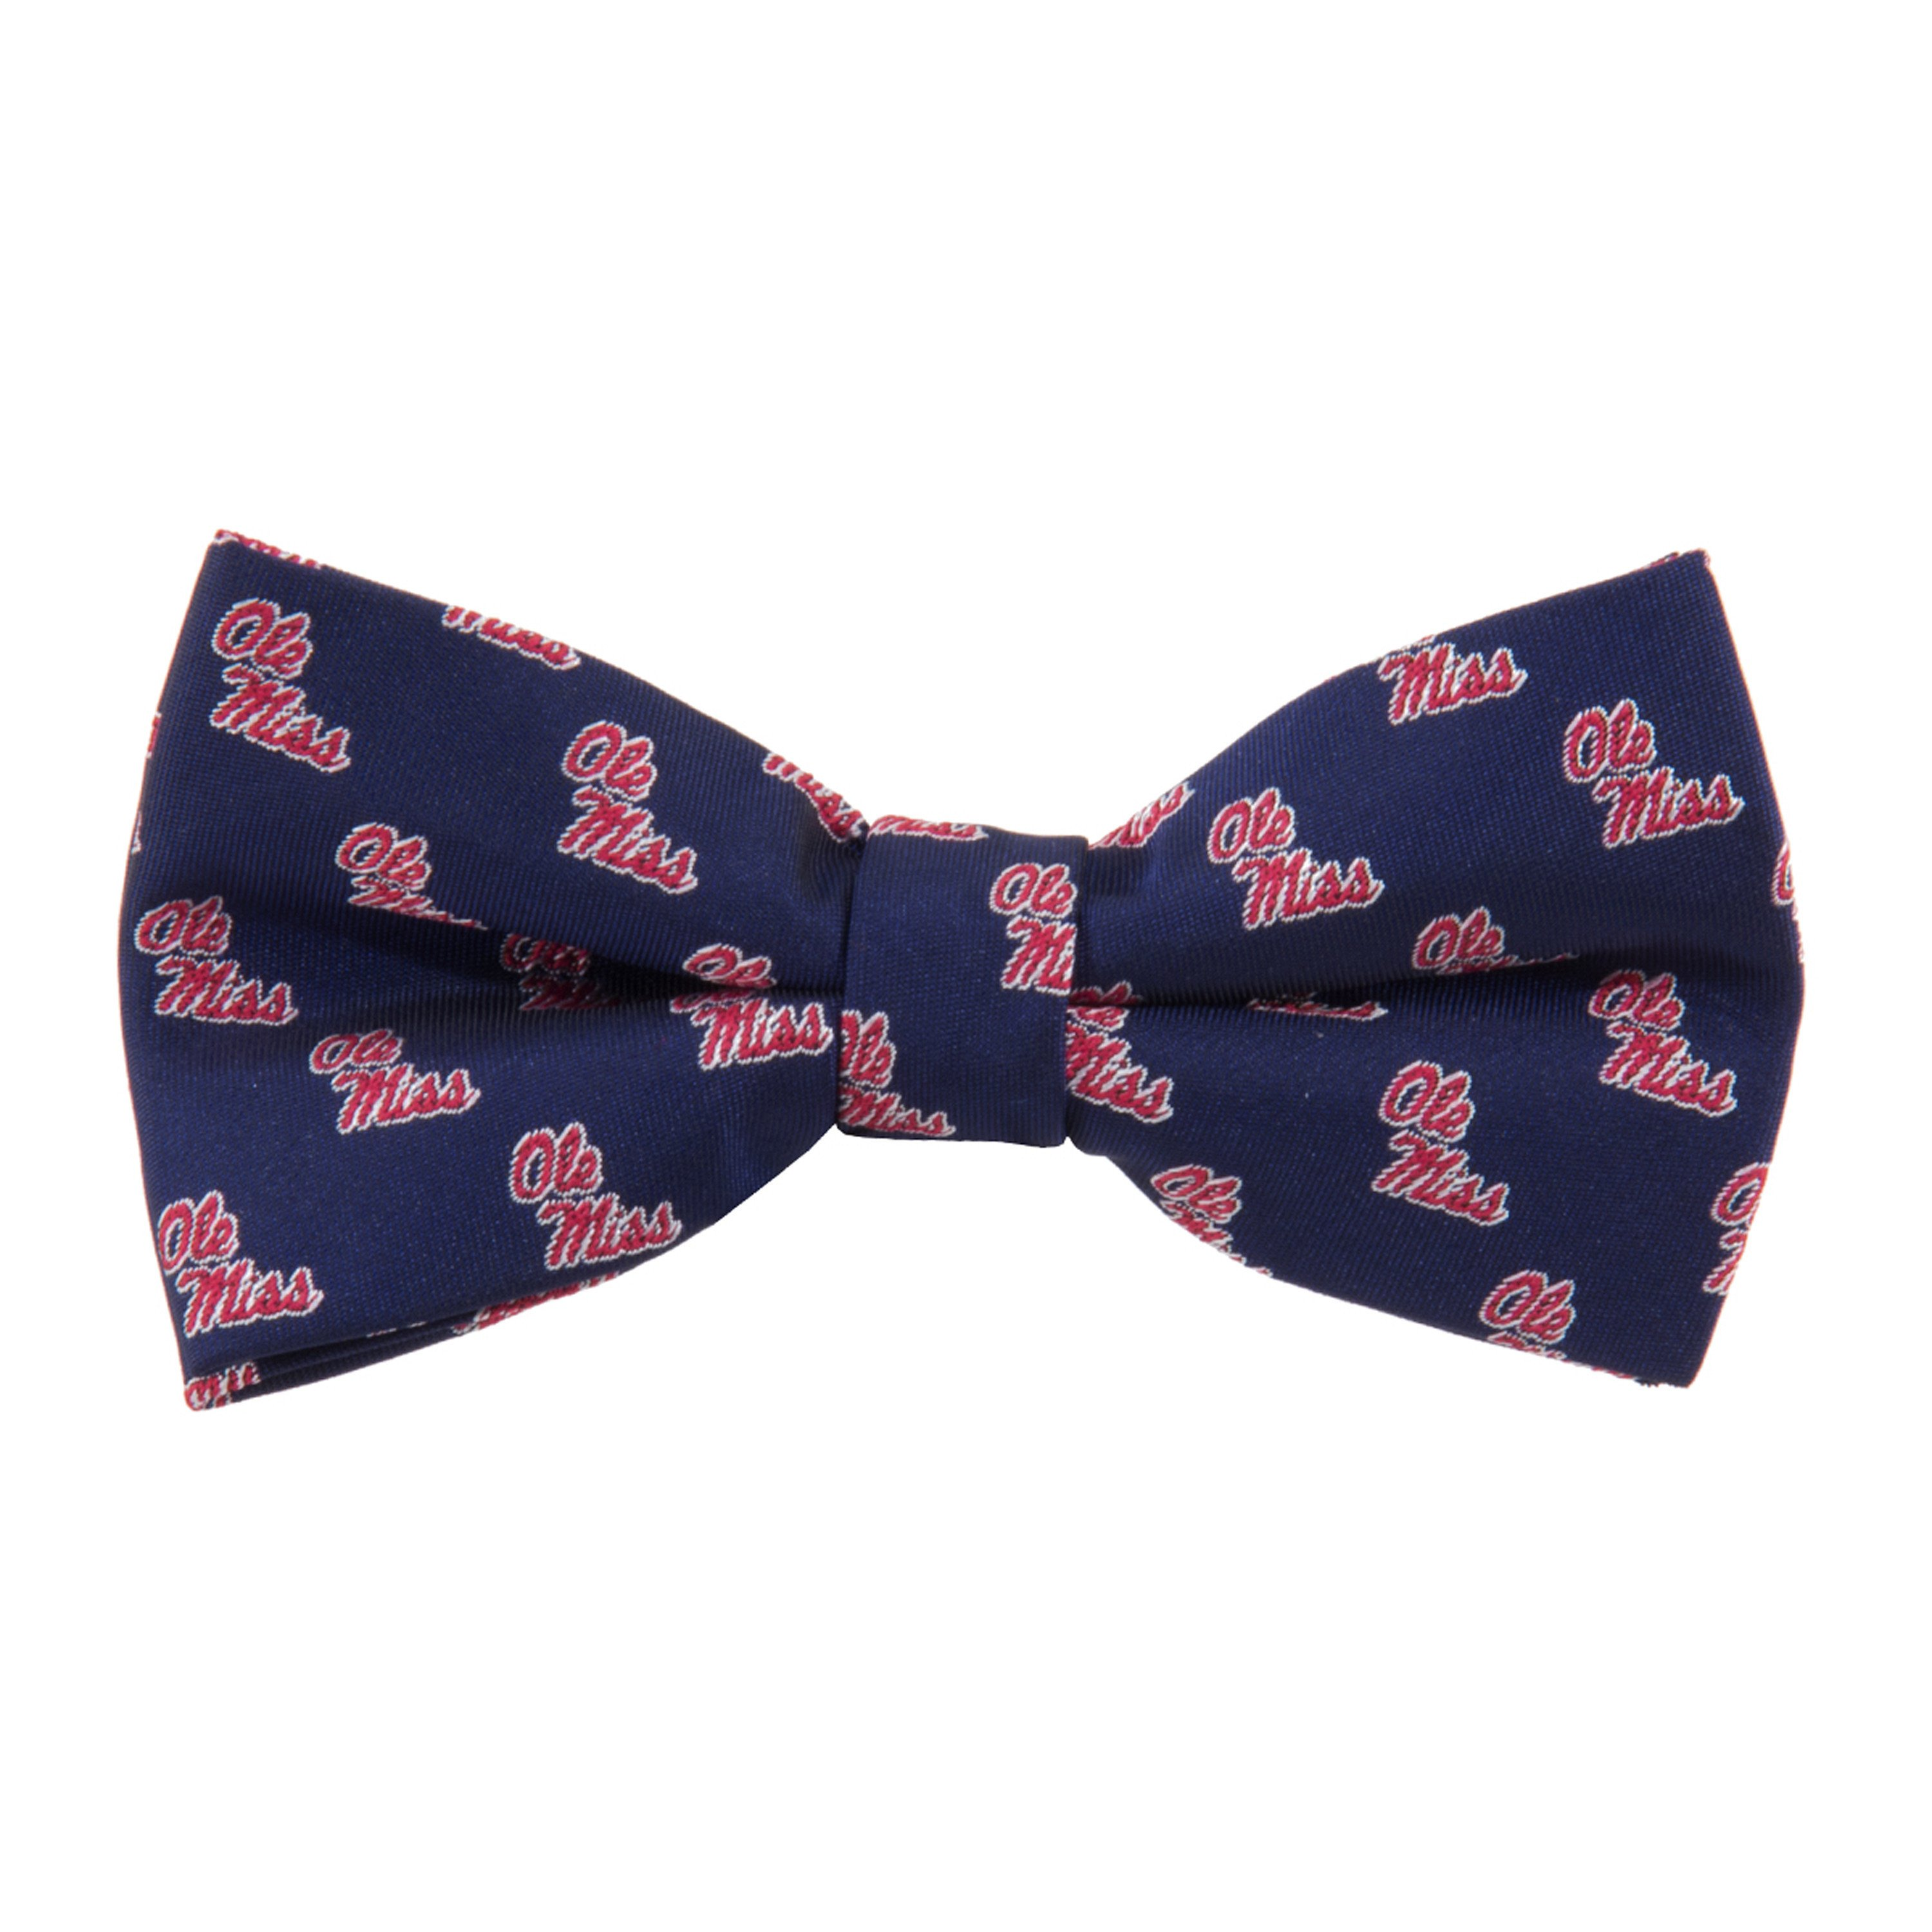 Ole Miss Bow Tie - Repeat